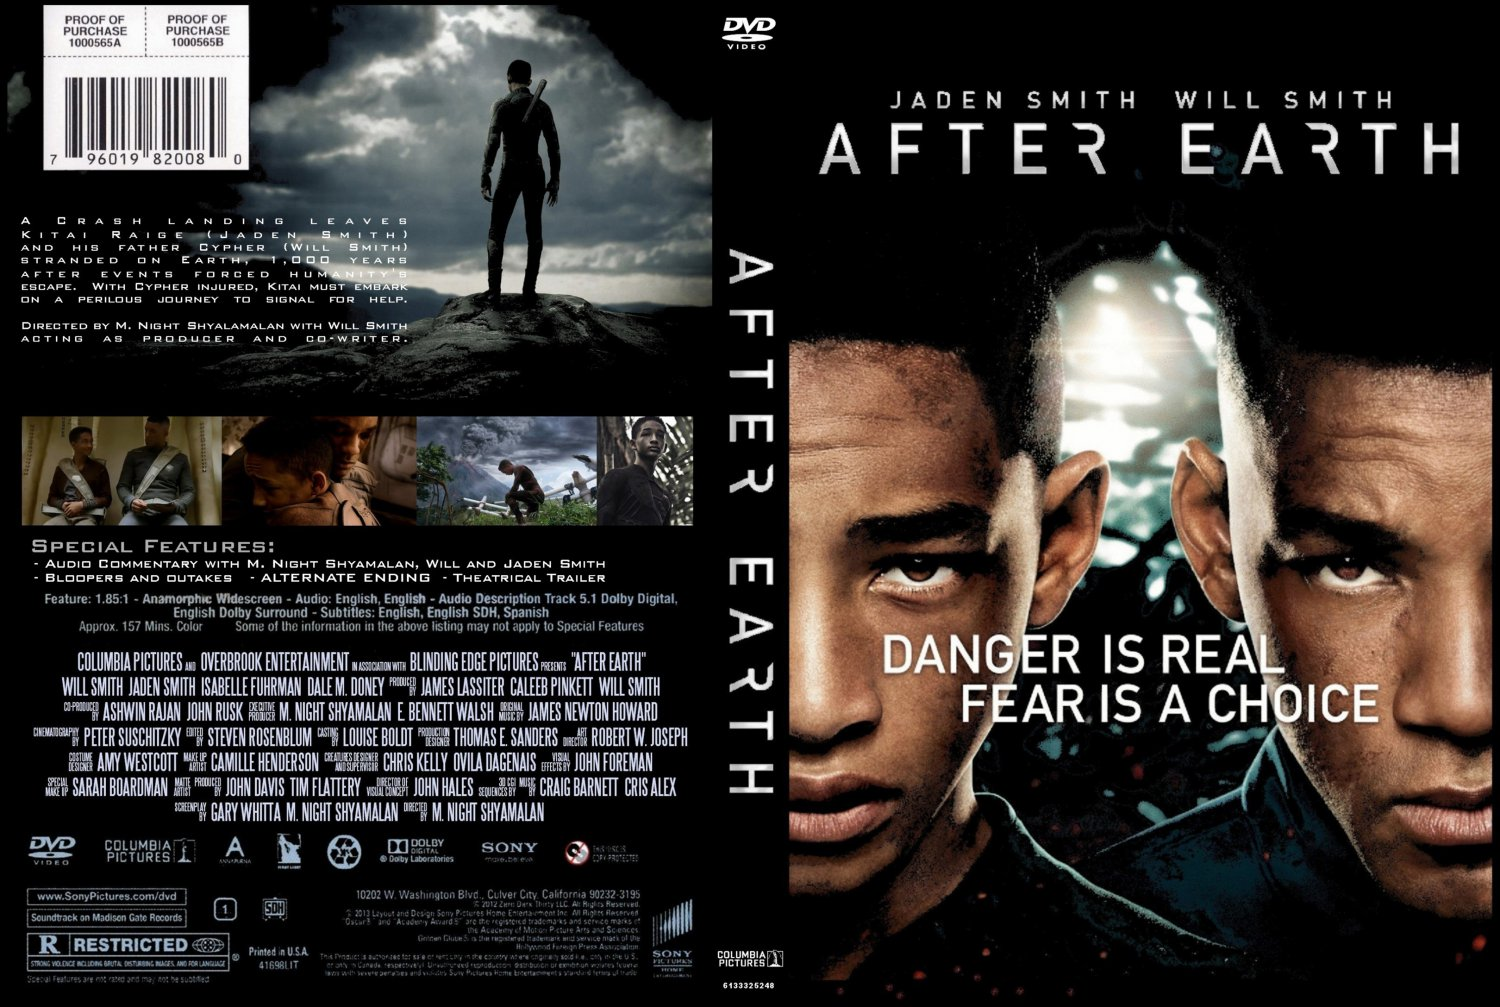 After Earth DVD Cover